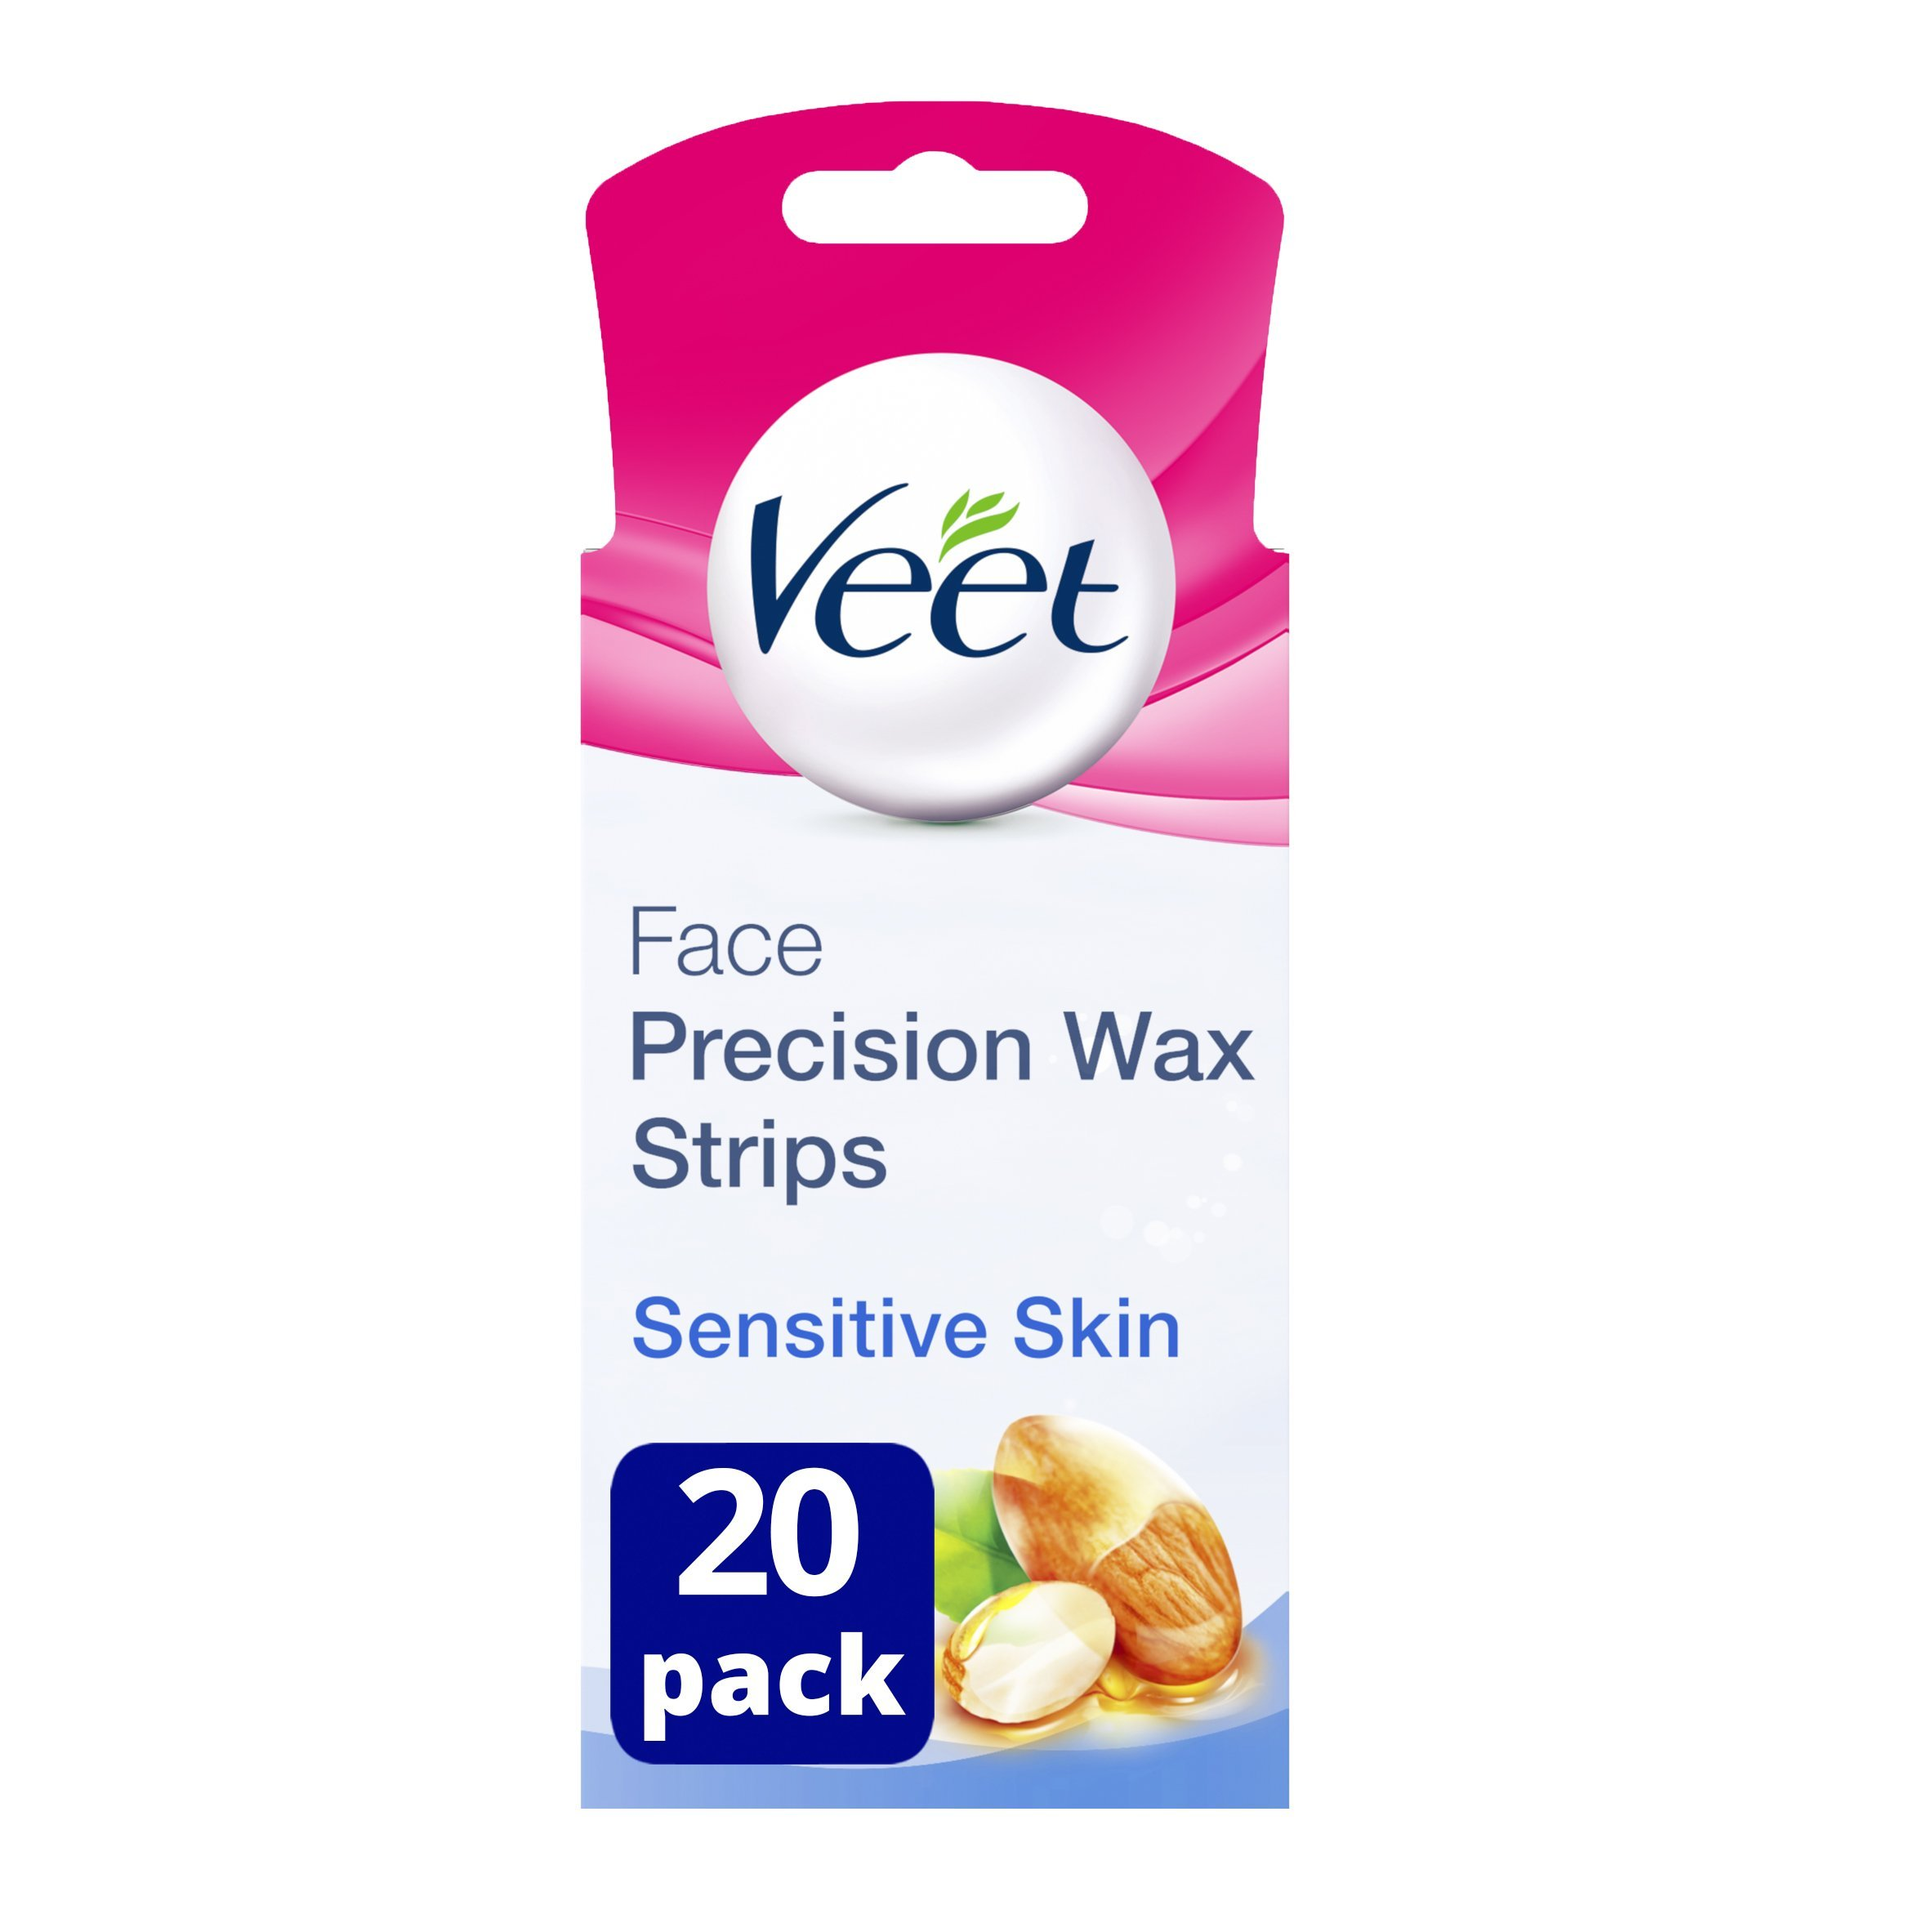 Veet Face Ready To Use Wax Strips for Sensitive Skin Wax Strips